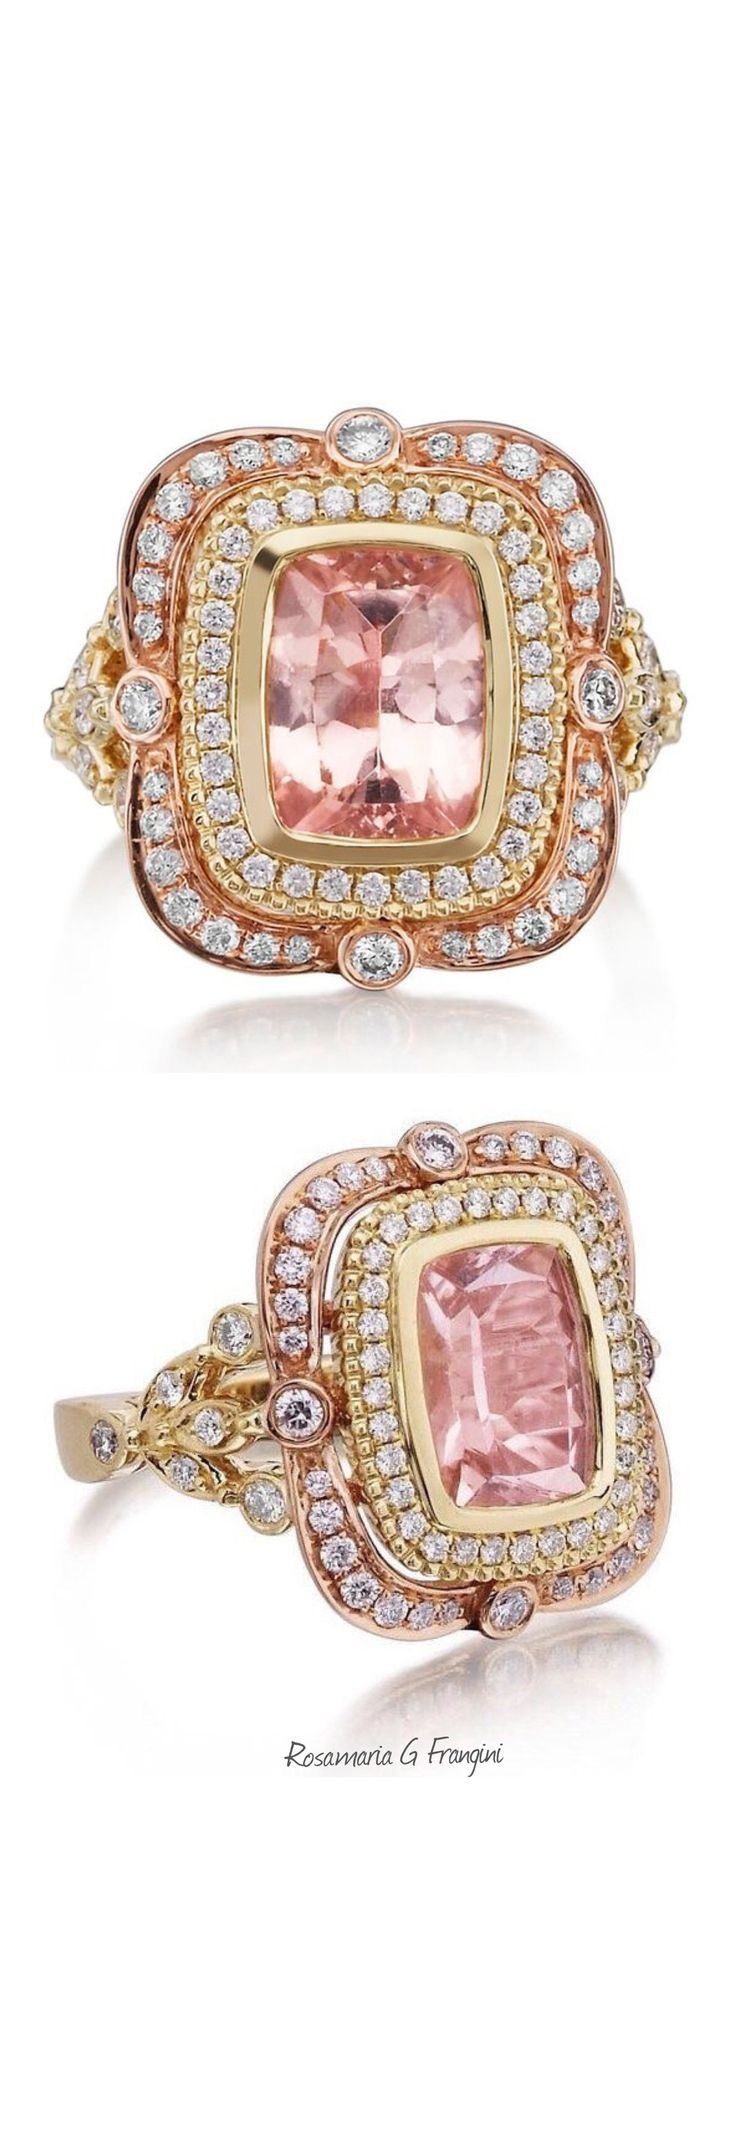 Rosamaria G Frangini | High Pink Jewellery | MM&Co | Morganite Ring 18kt Pink & Yellow Gold Long Cushion Cut Pink 8x10mm MORGANITE ENGAGEMENT Double Halo Victorian Diamond Ring by PristineCustomRings